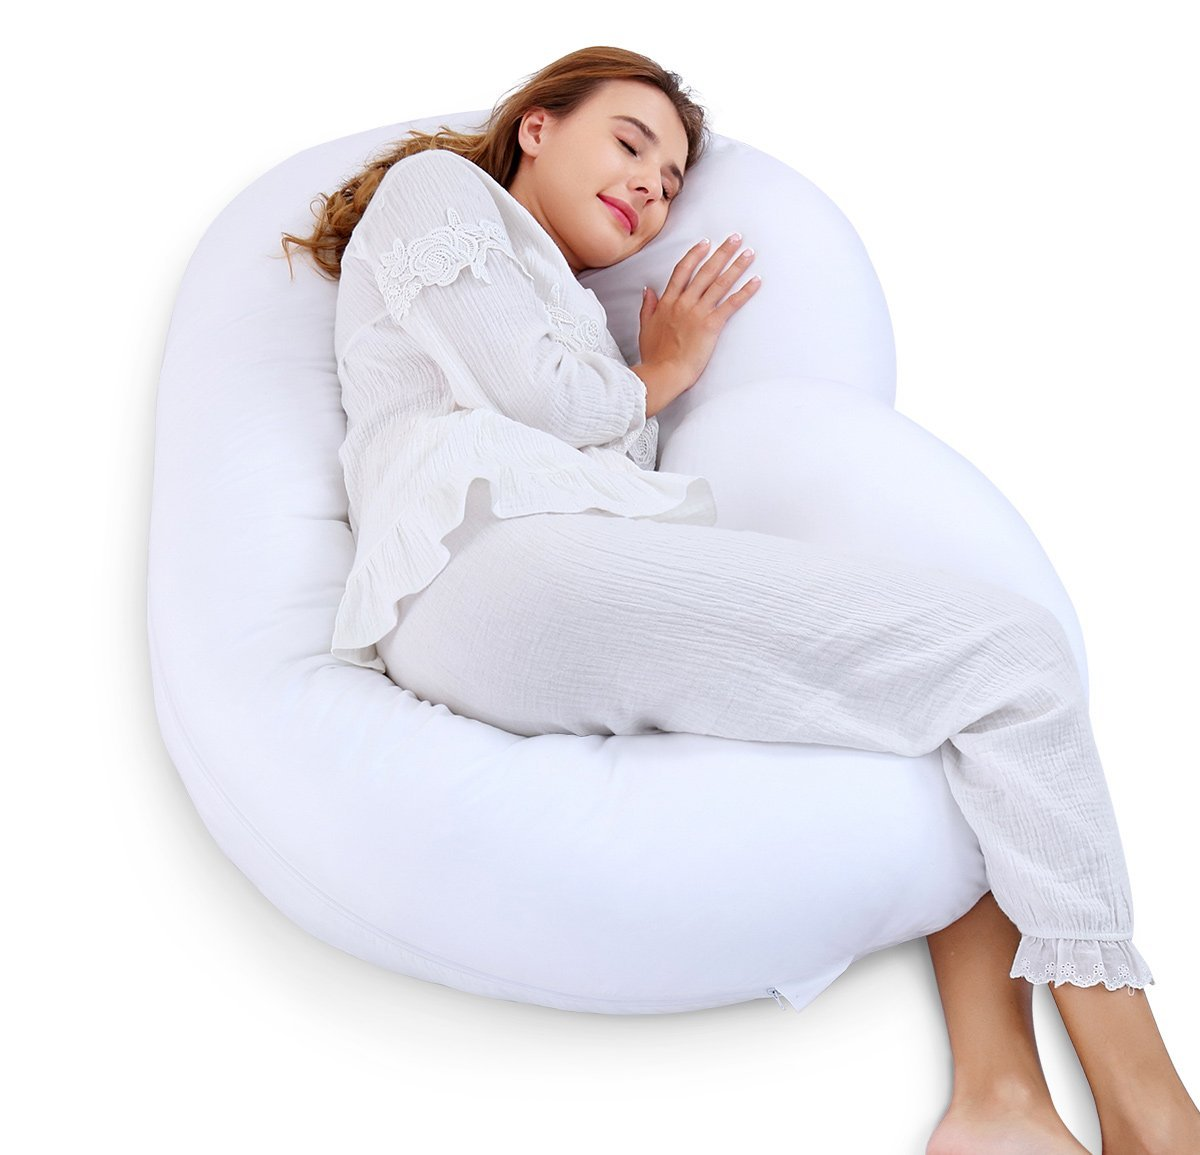 Marine Moon C-shaped Full Body Pregnancy/Maternity Pillow with Washable Cotton Cover, 59""